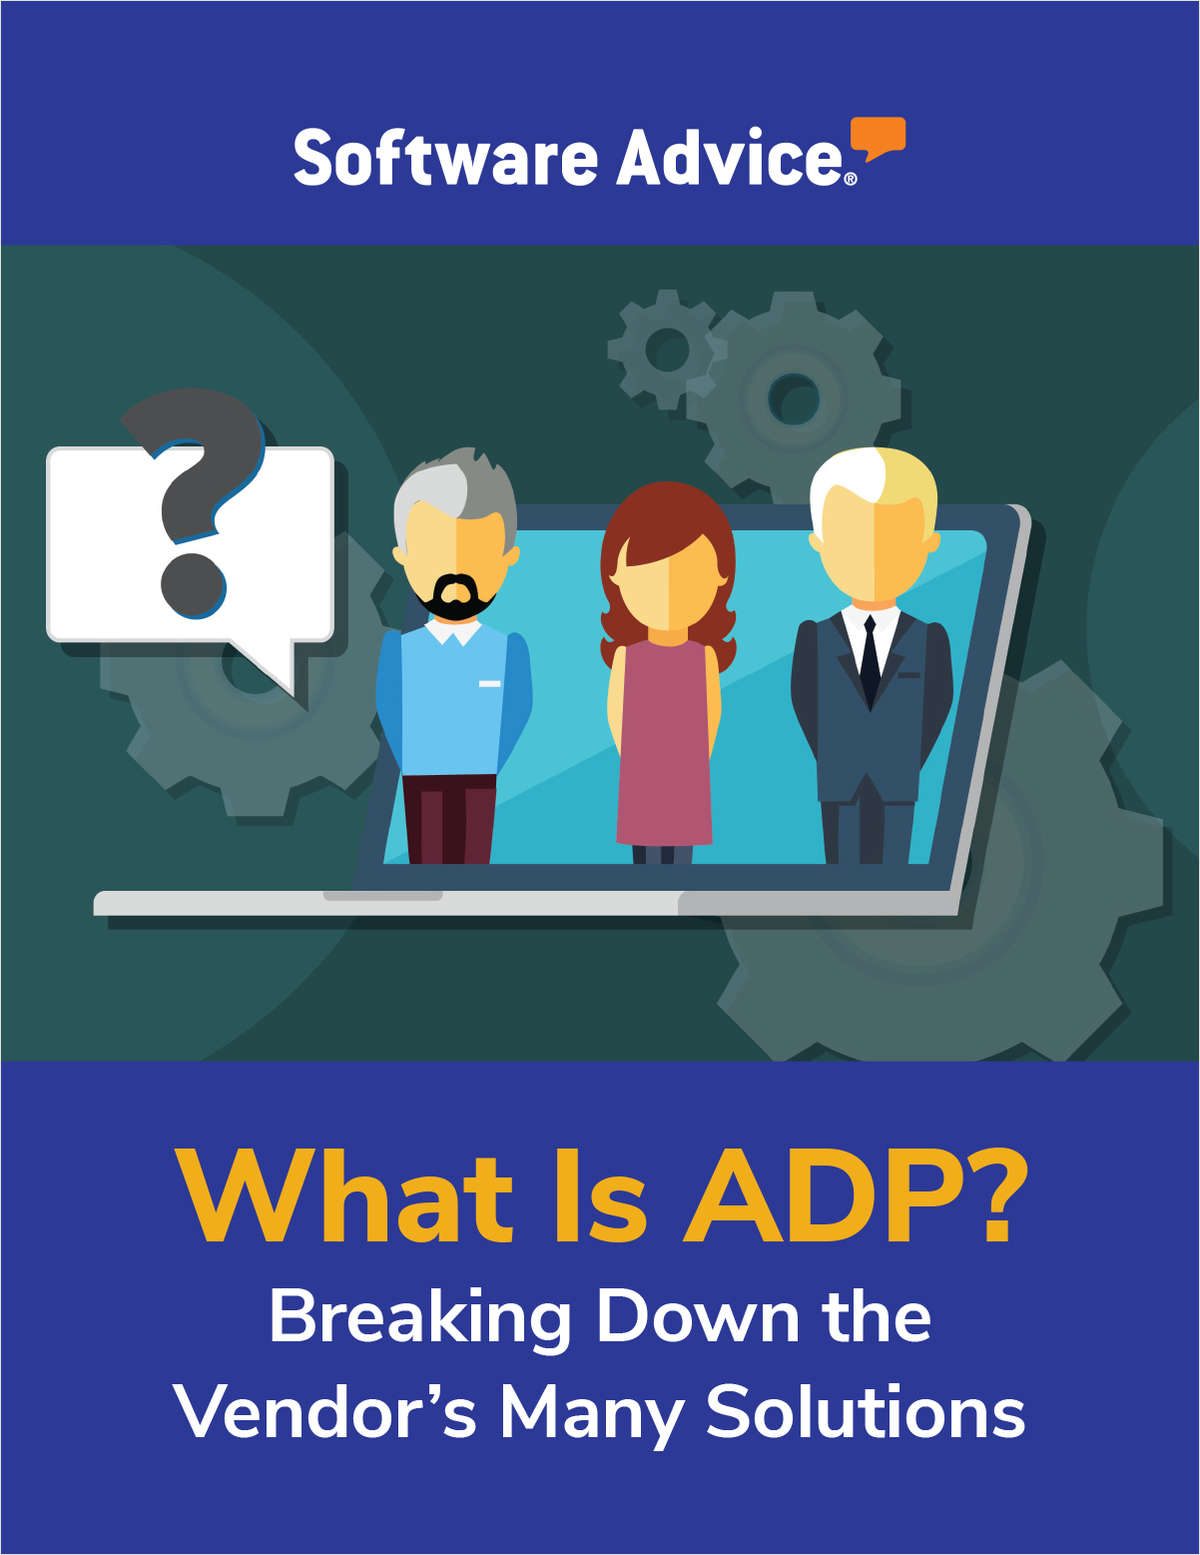 What Is ADP? Breaking Down the Vendor's Many Solutions